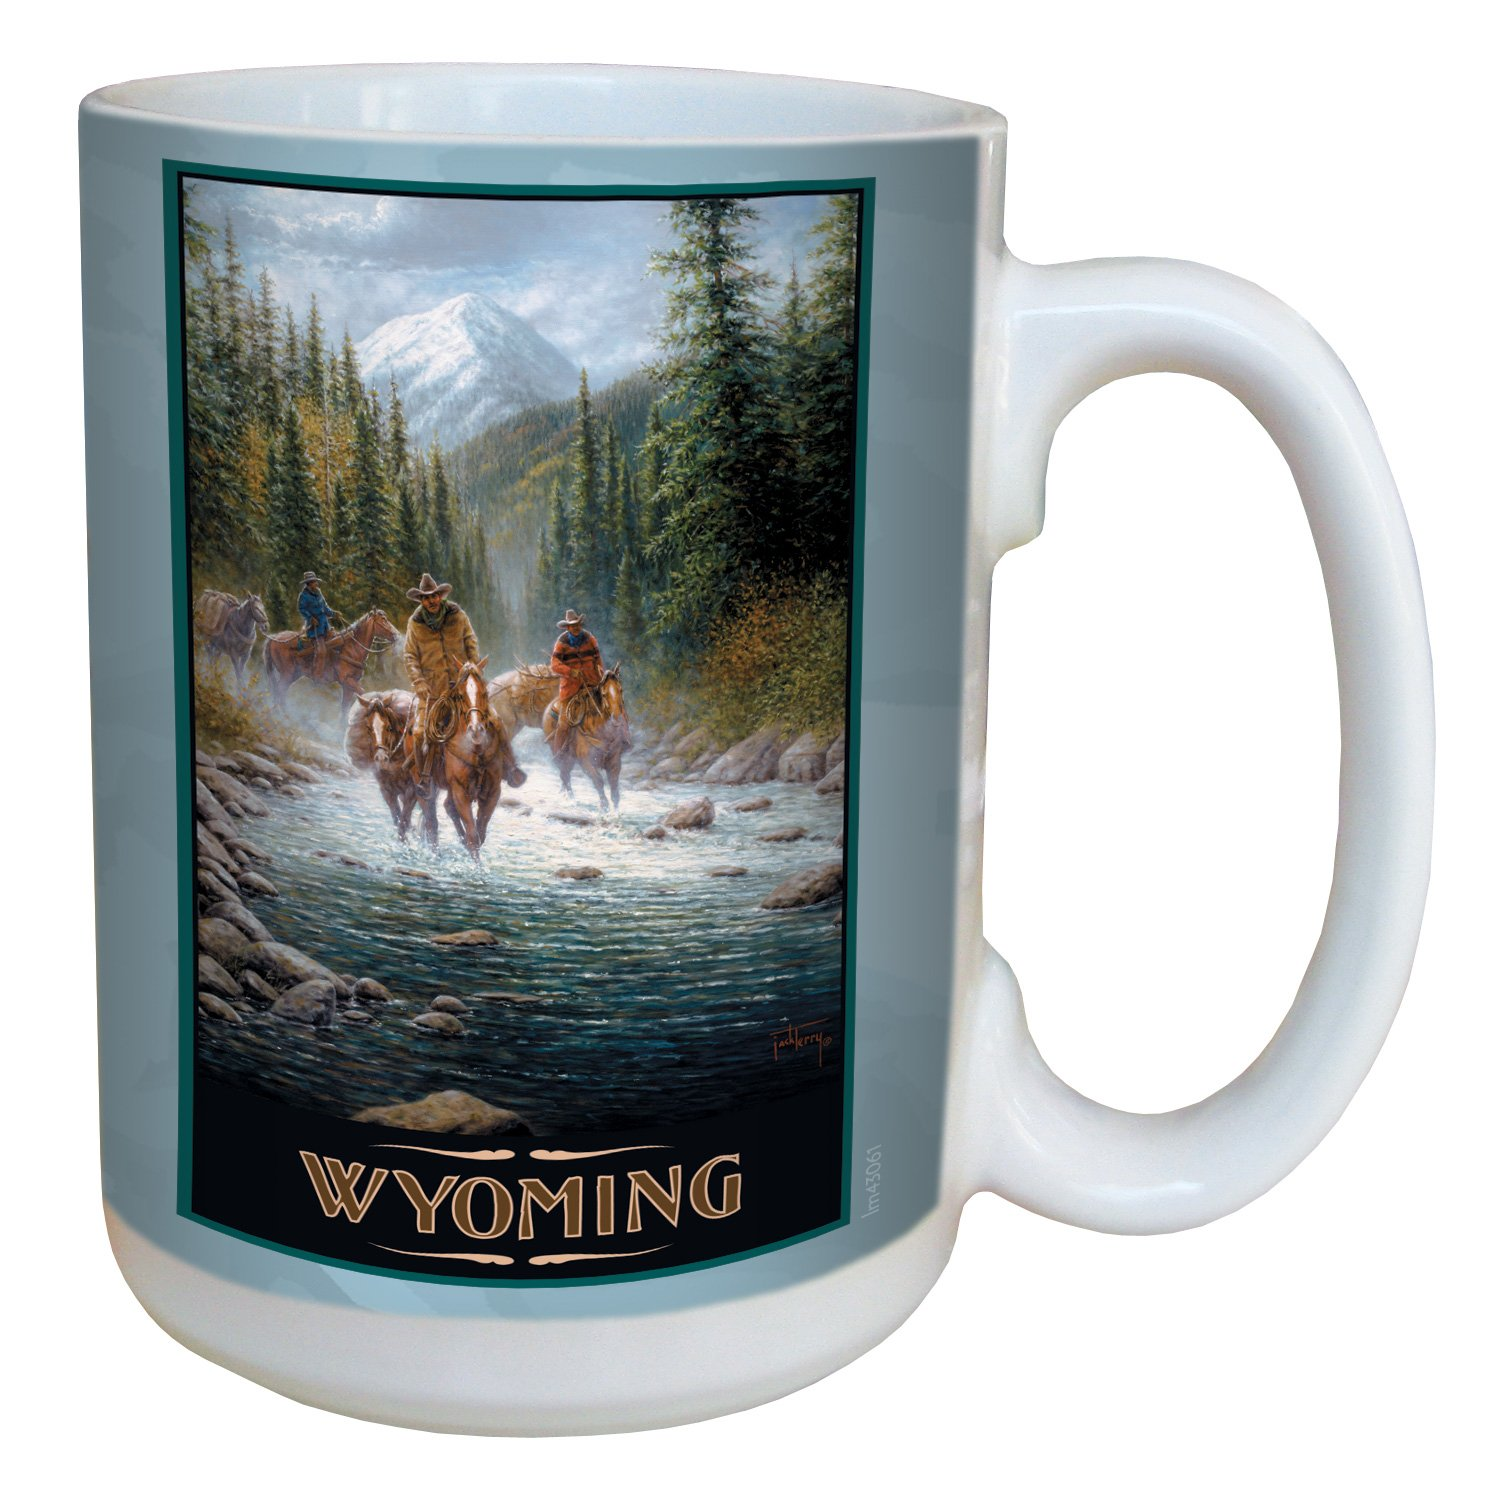 Tree-Free Greetings lm43061 Scenic Wyoming Cowboys by Jack Terry Ceramic Mug with Full-Sized Handle, 15-Ounce, Multicolored Tree Free